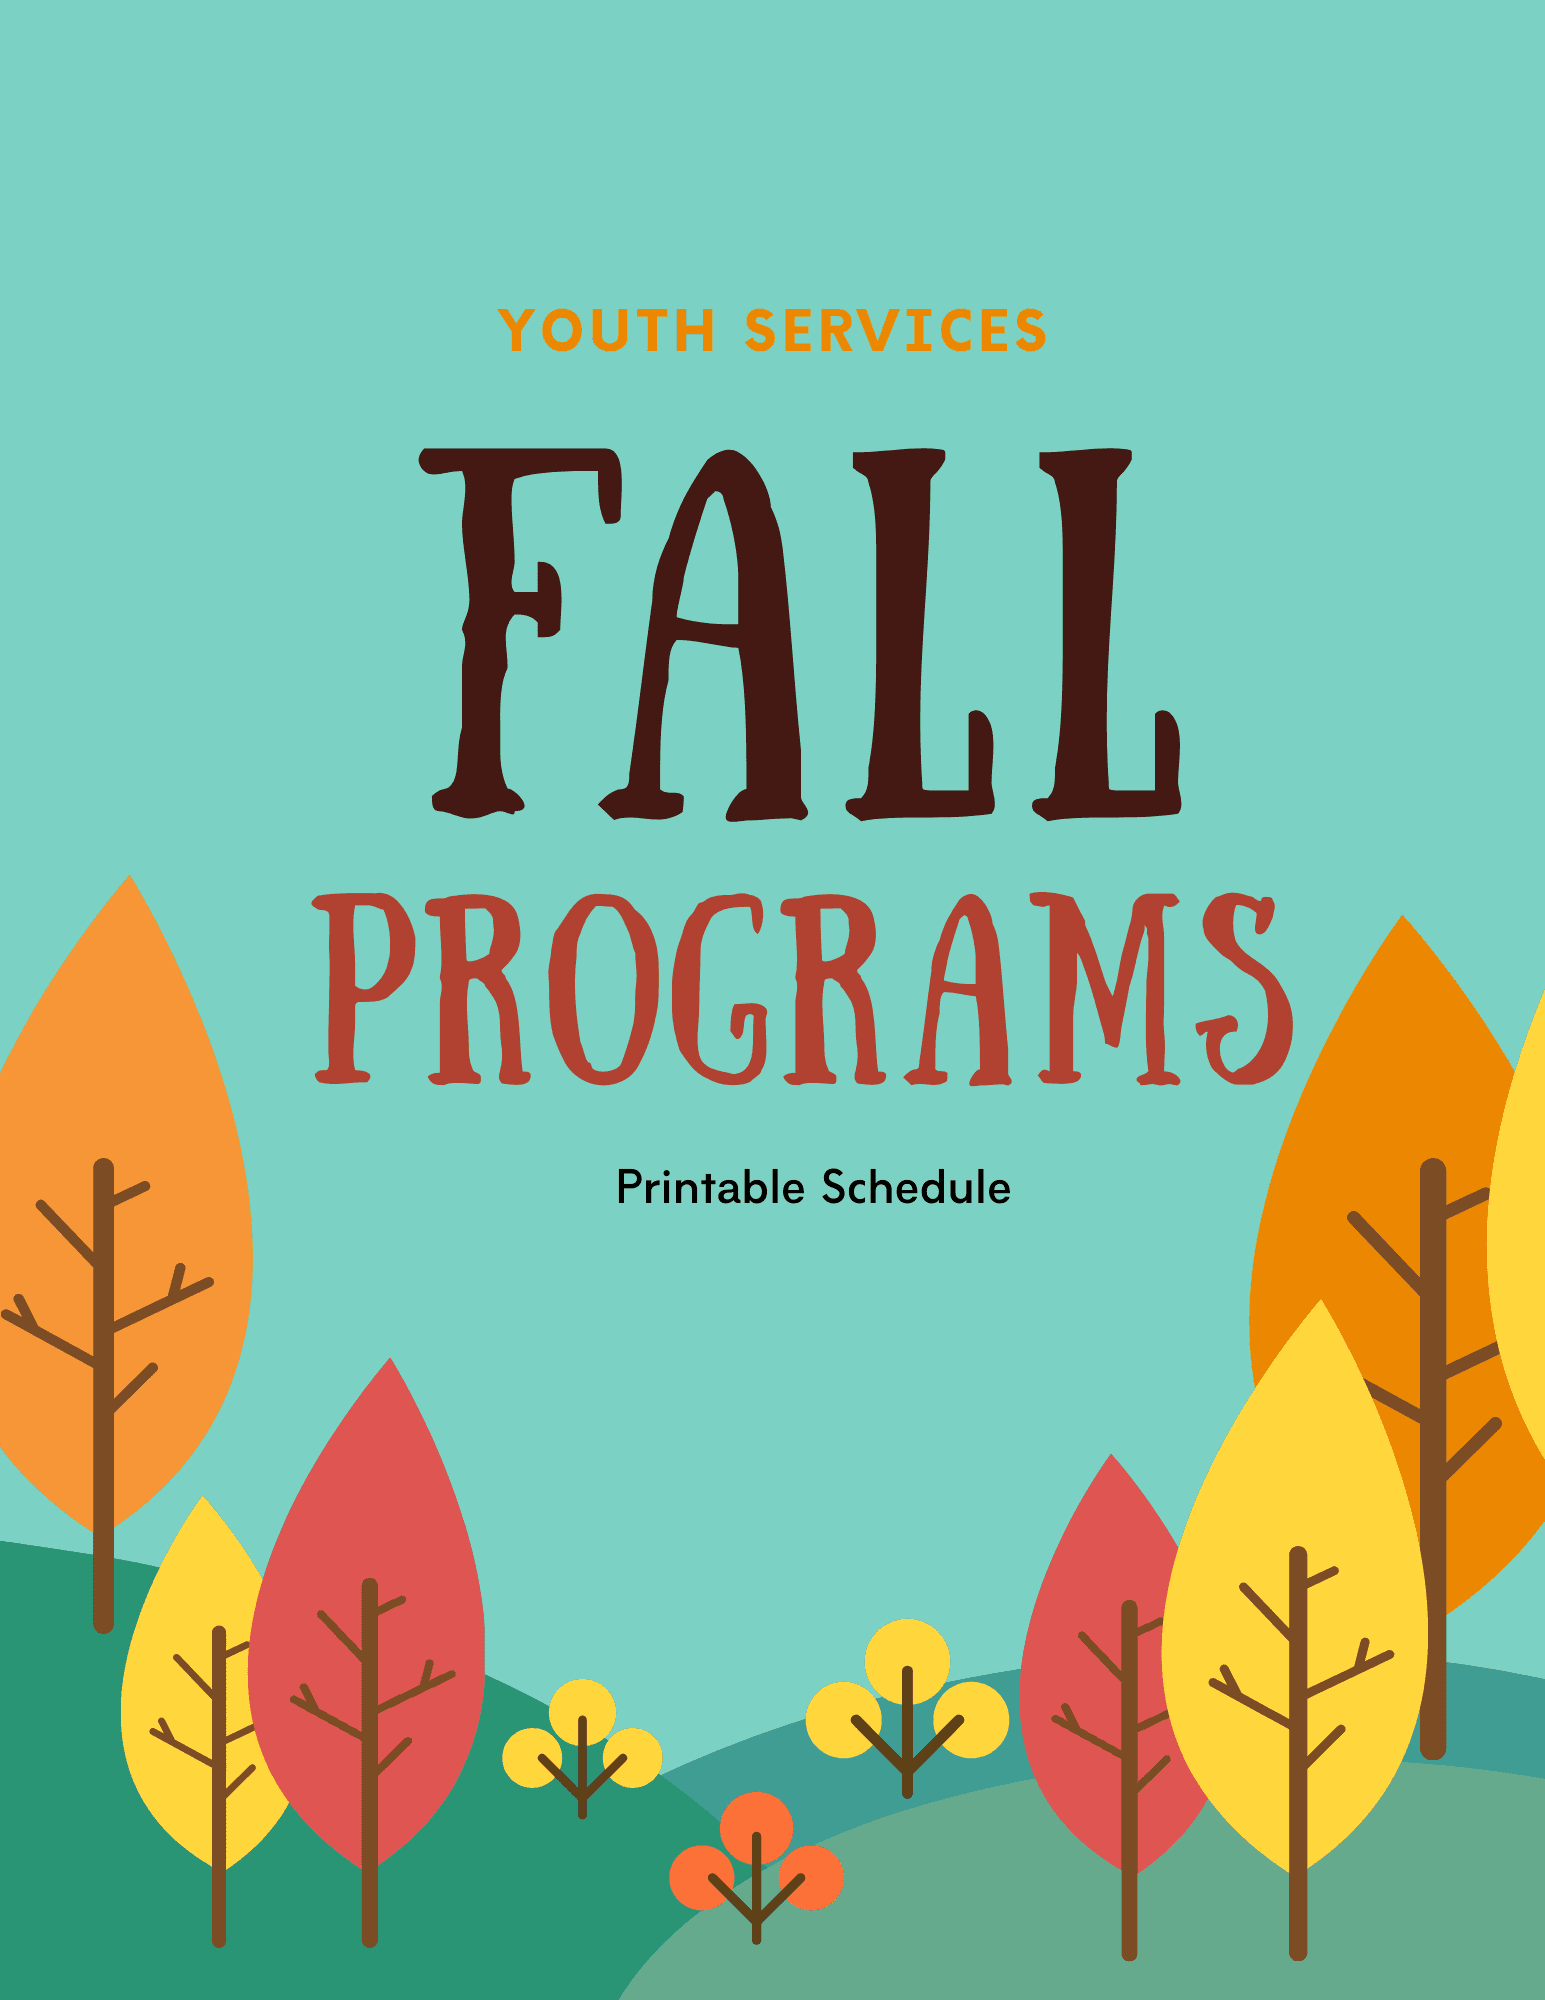 Youth Services Printable Schedule